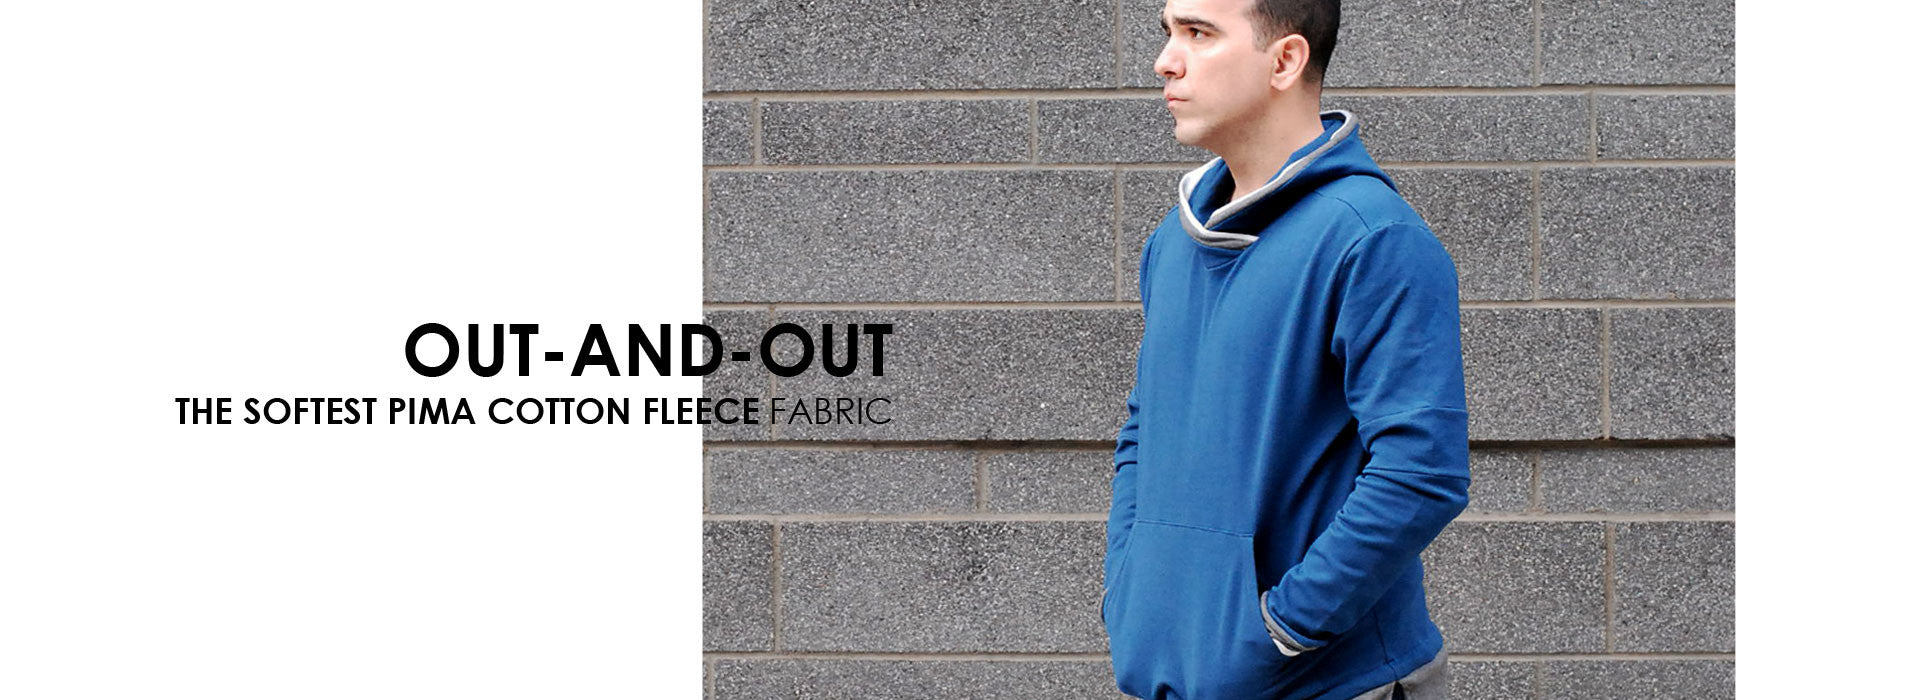 Out and Out The Softest Pima Cotton Fleece Fabric